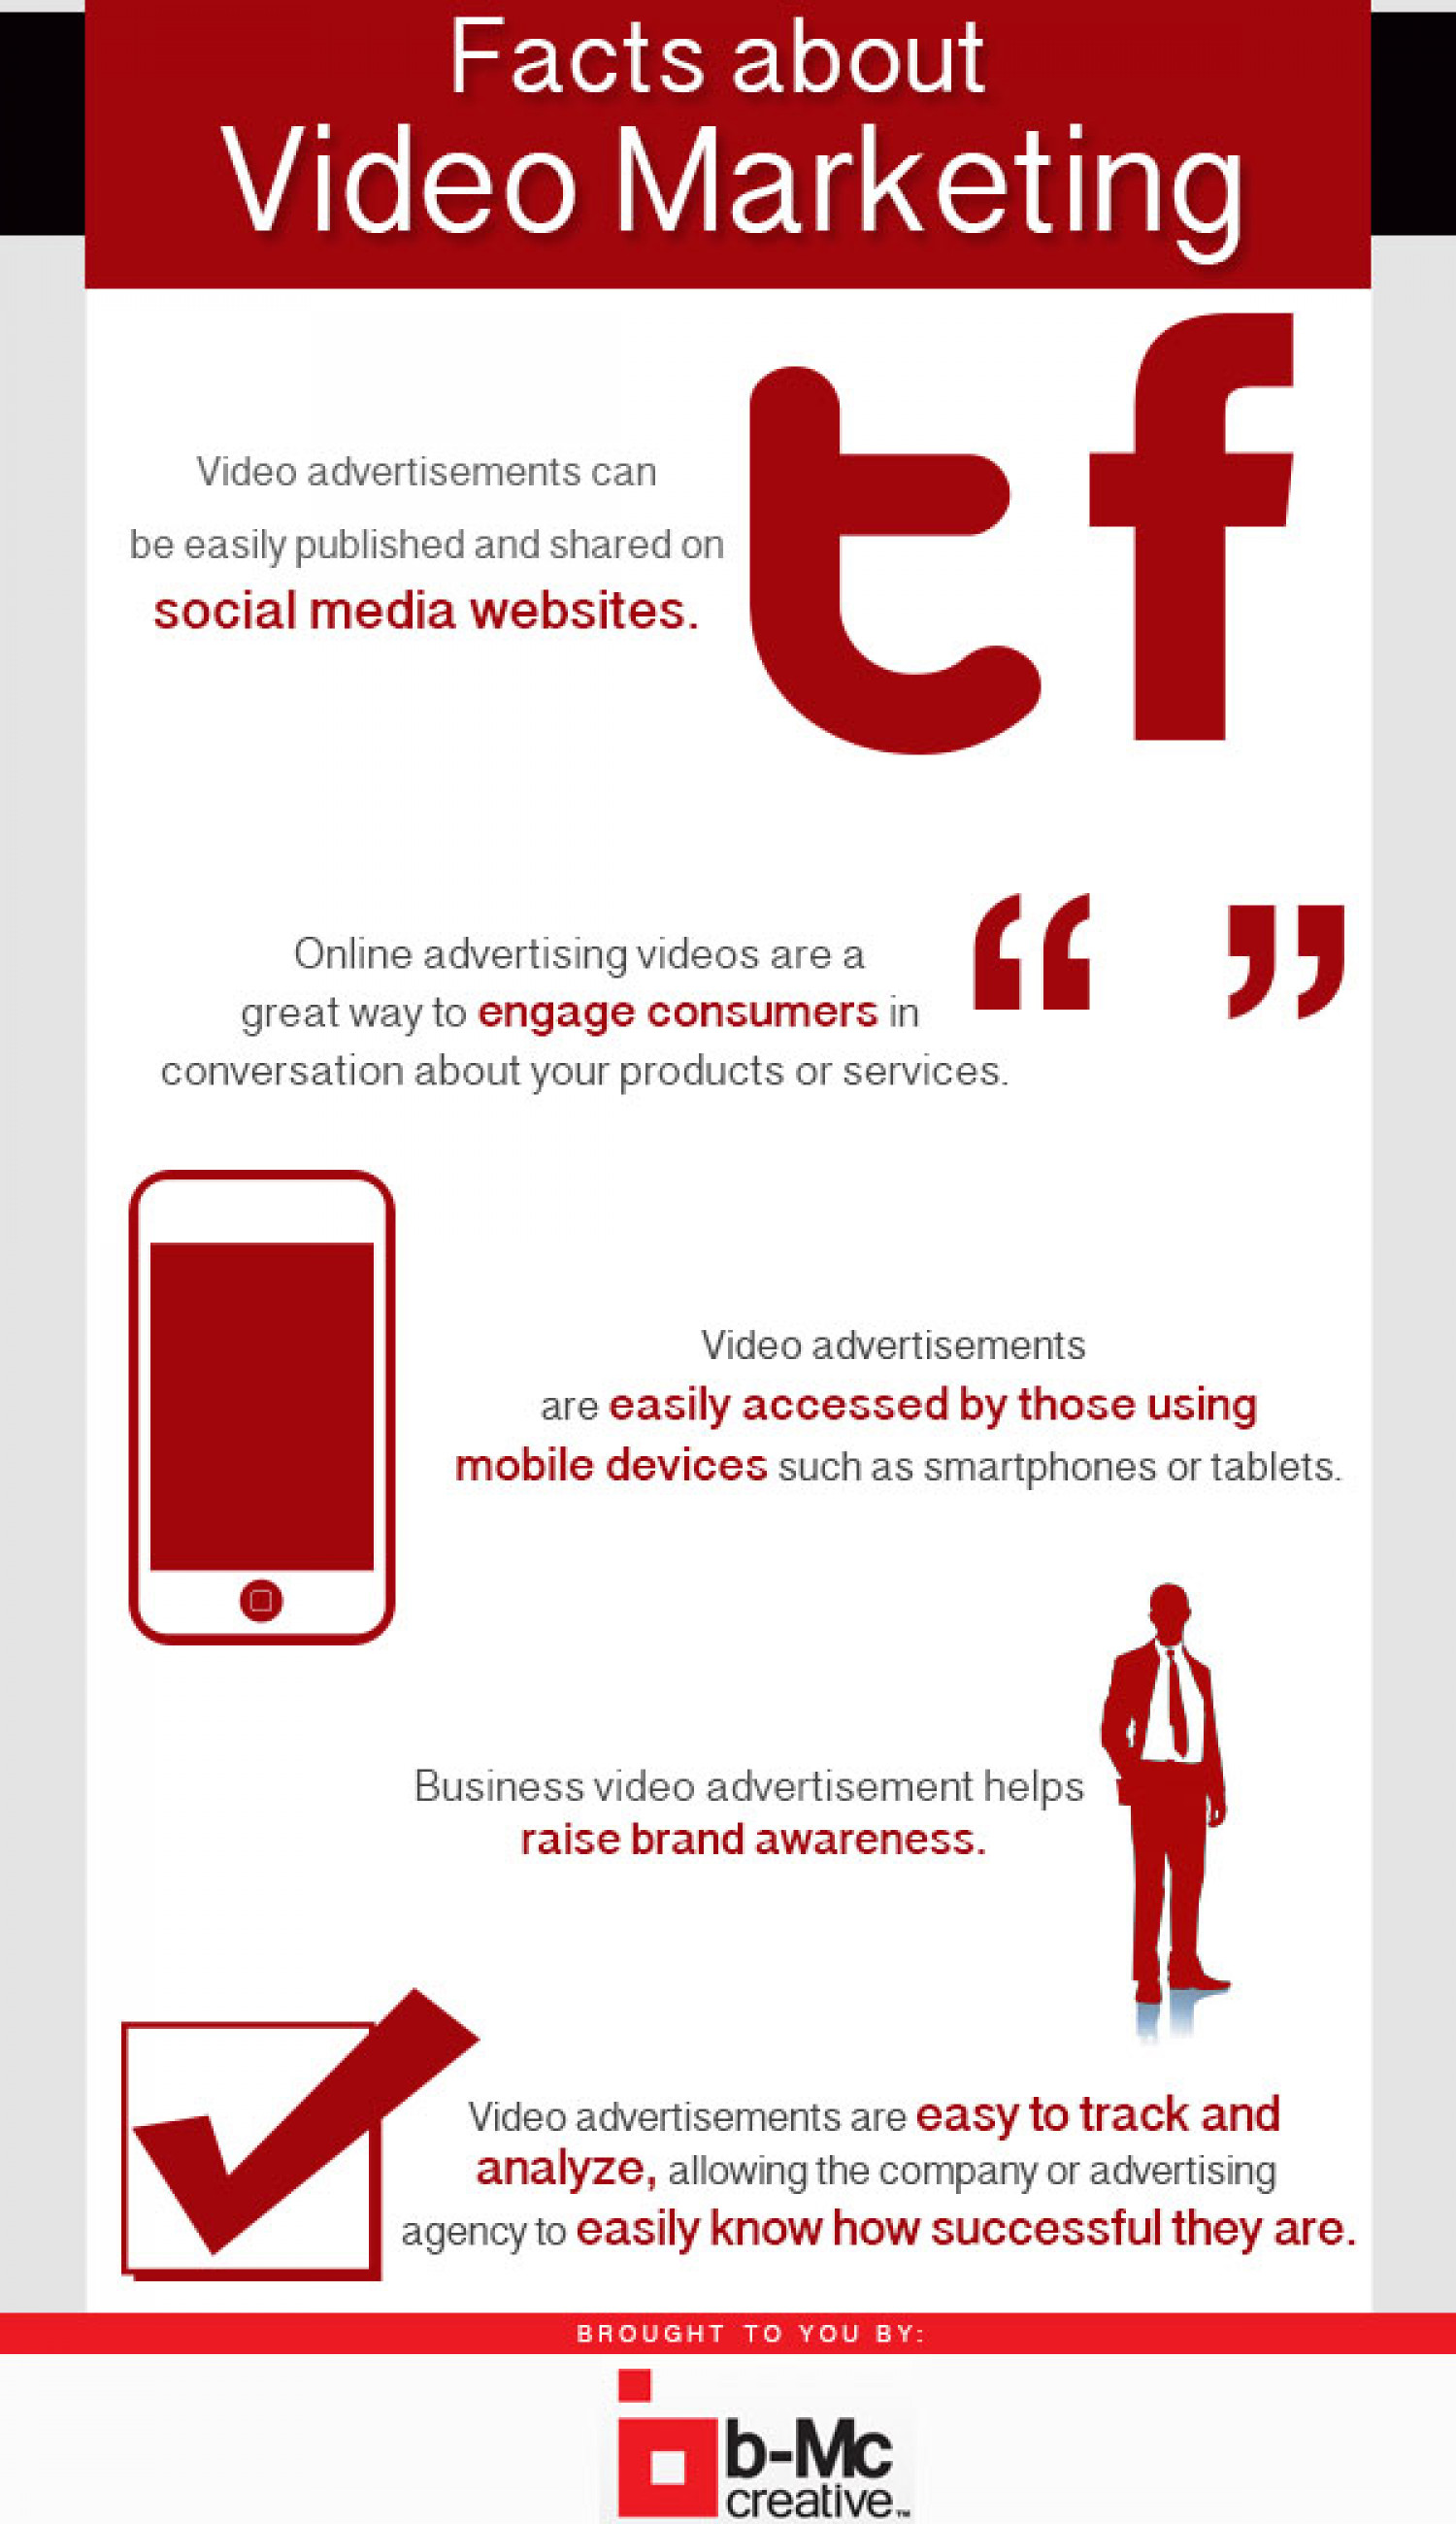 Facts About Video Marketing Infographic